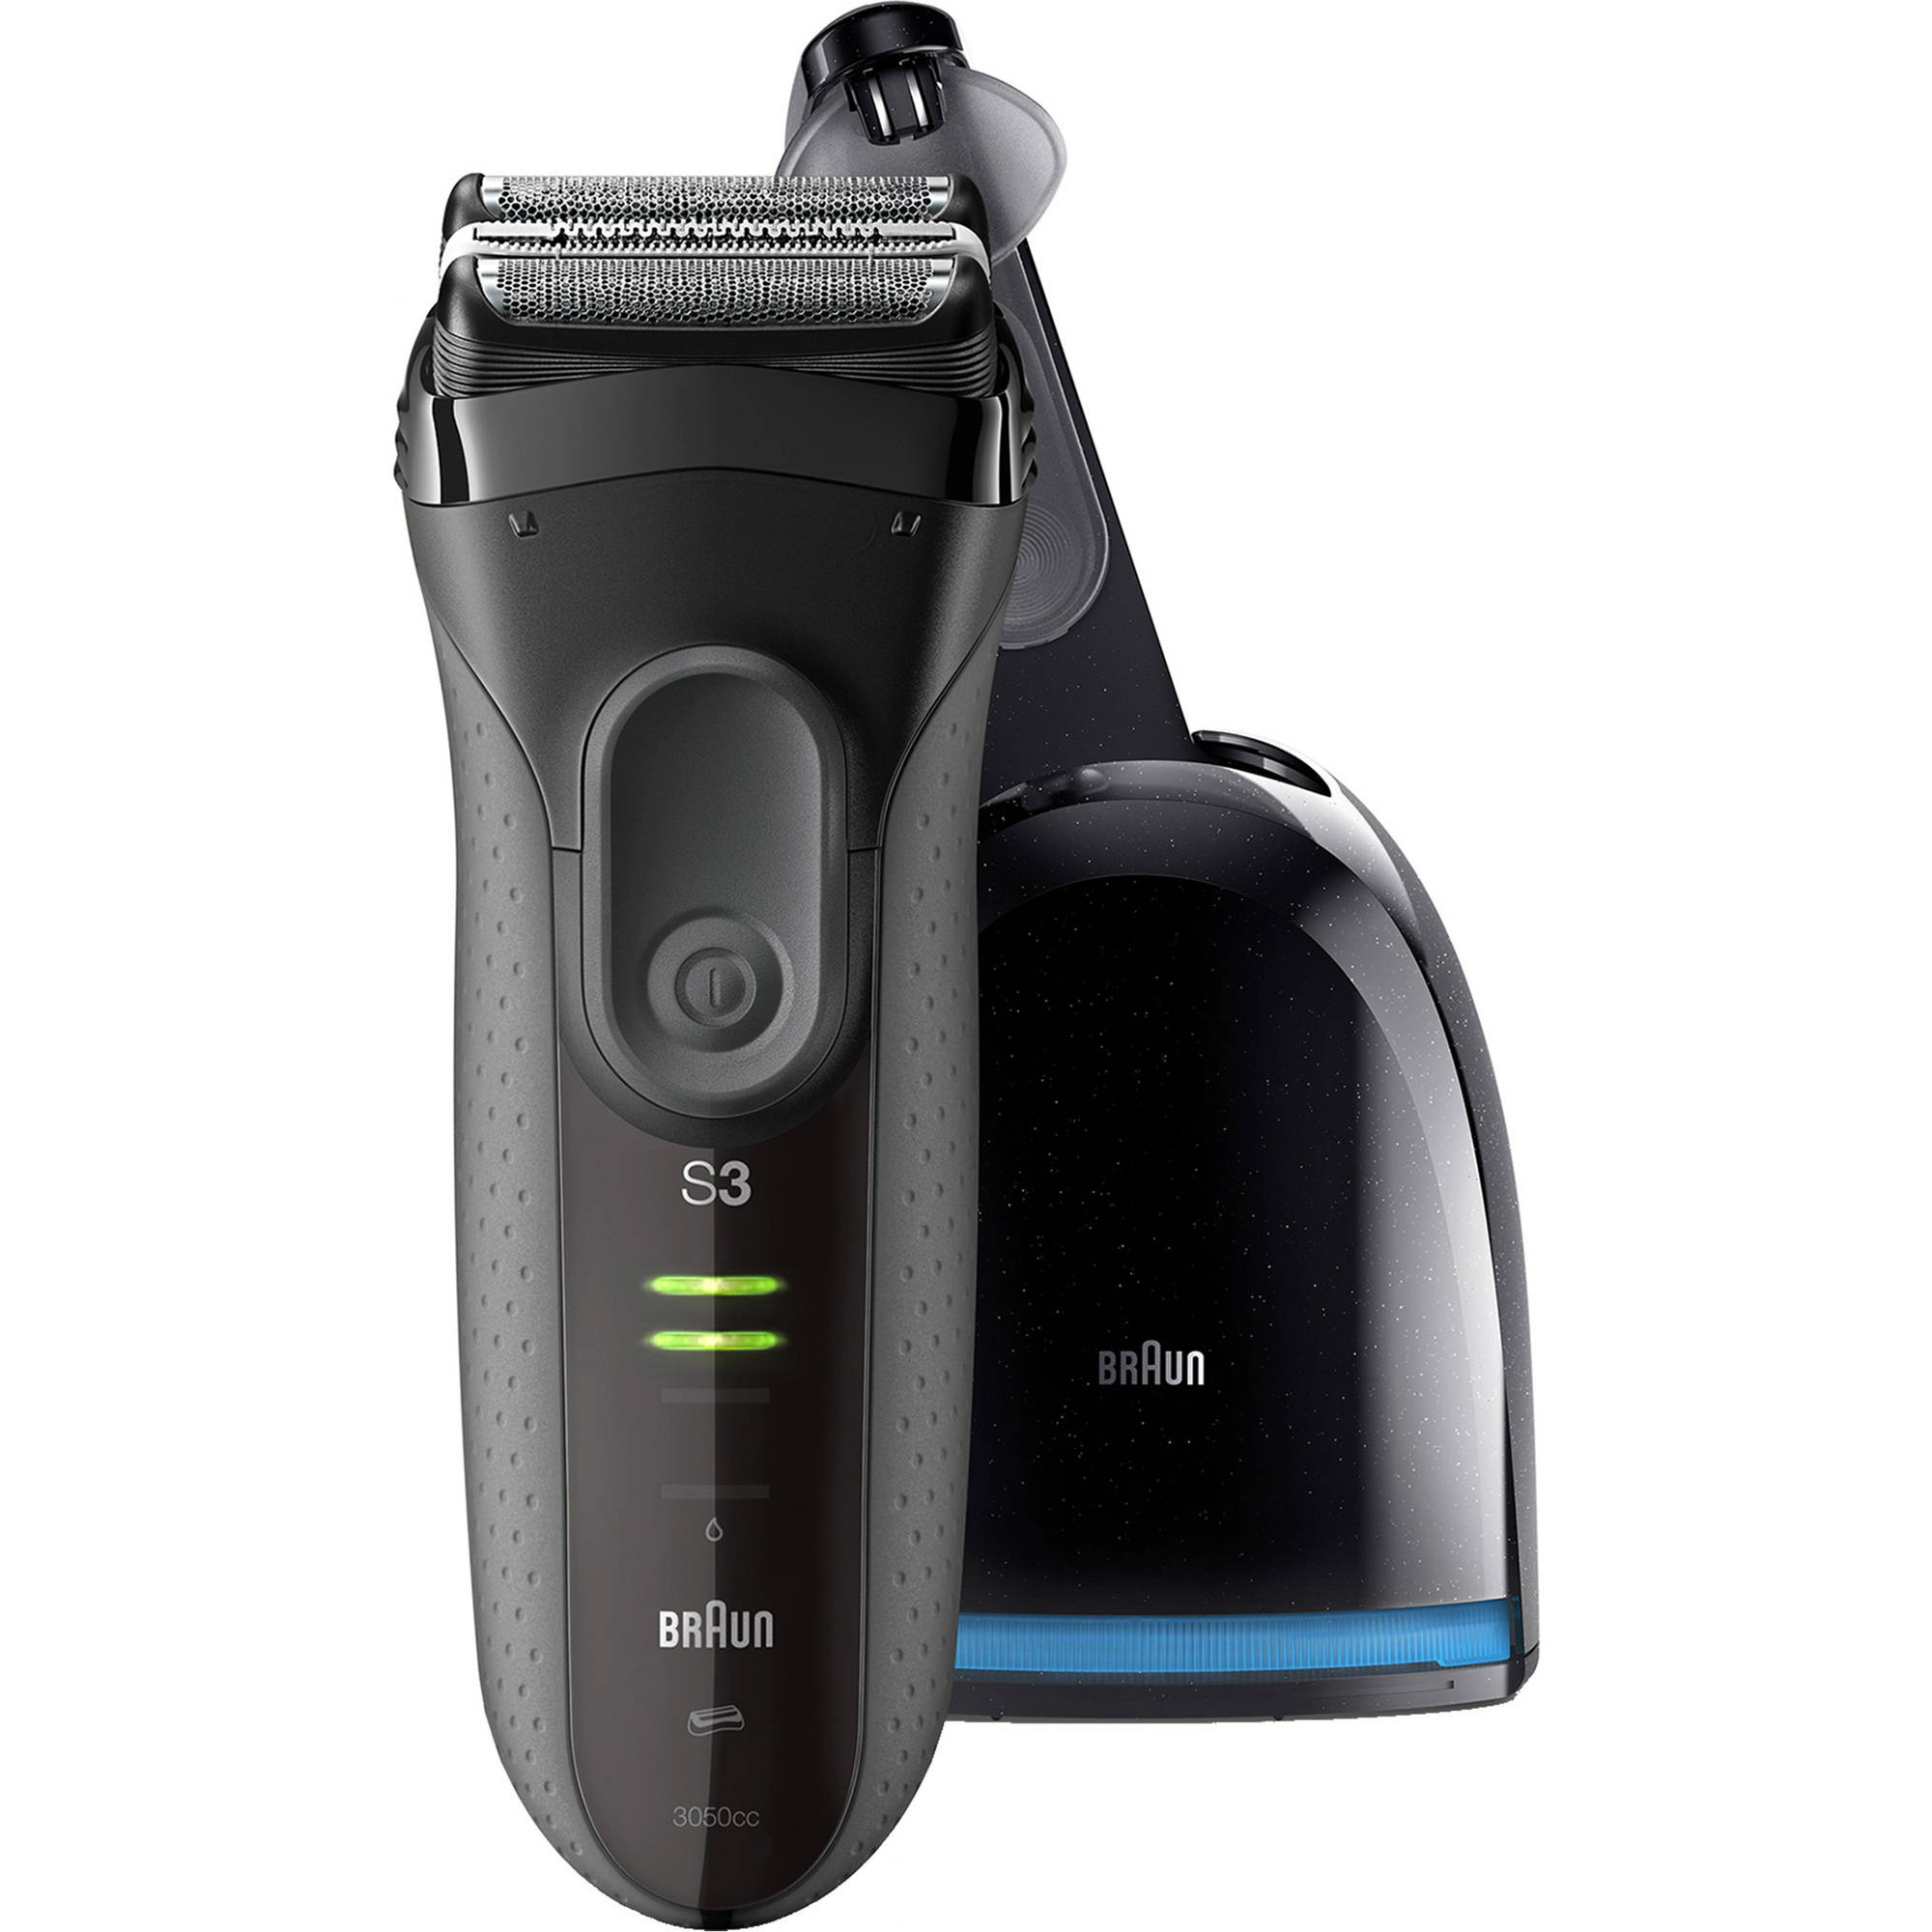 Braun Series 3 ($10 Rebate Available) 3050cc Electric Shaver with Clean & Charge Station